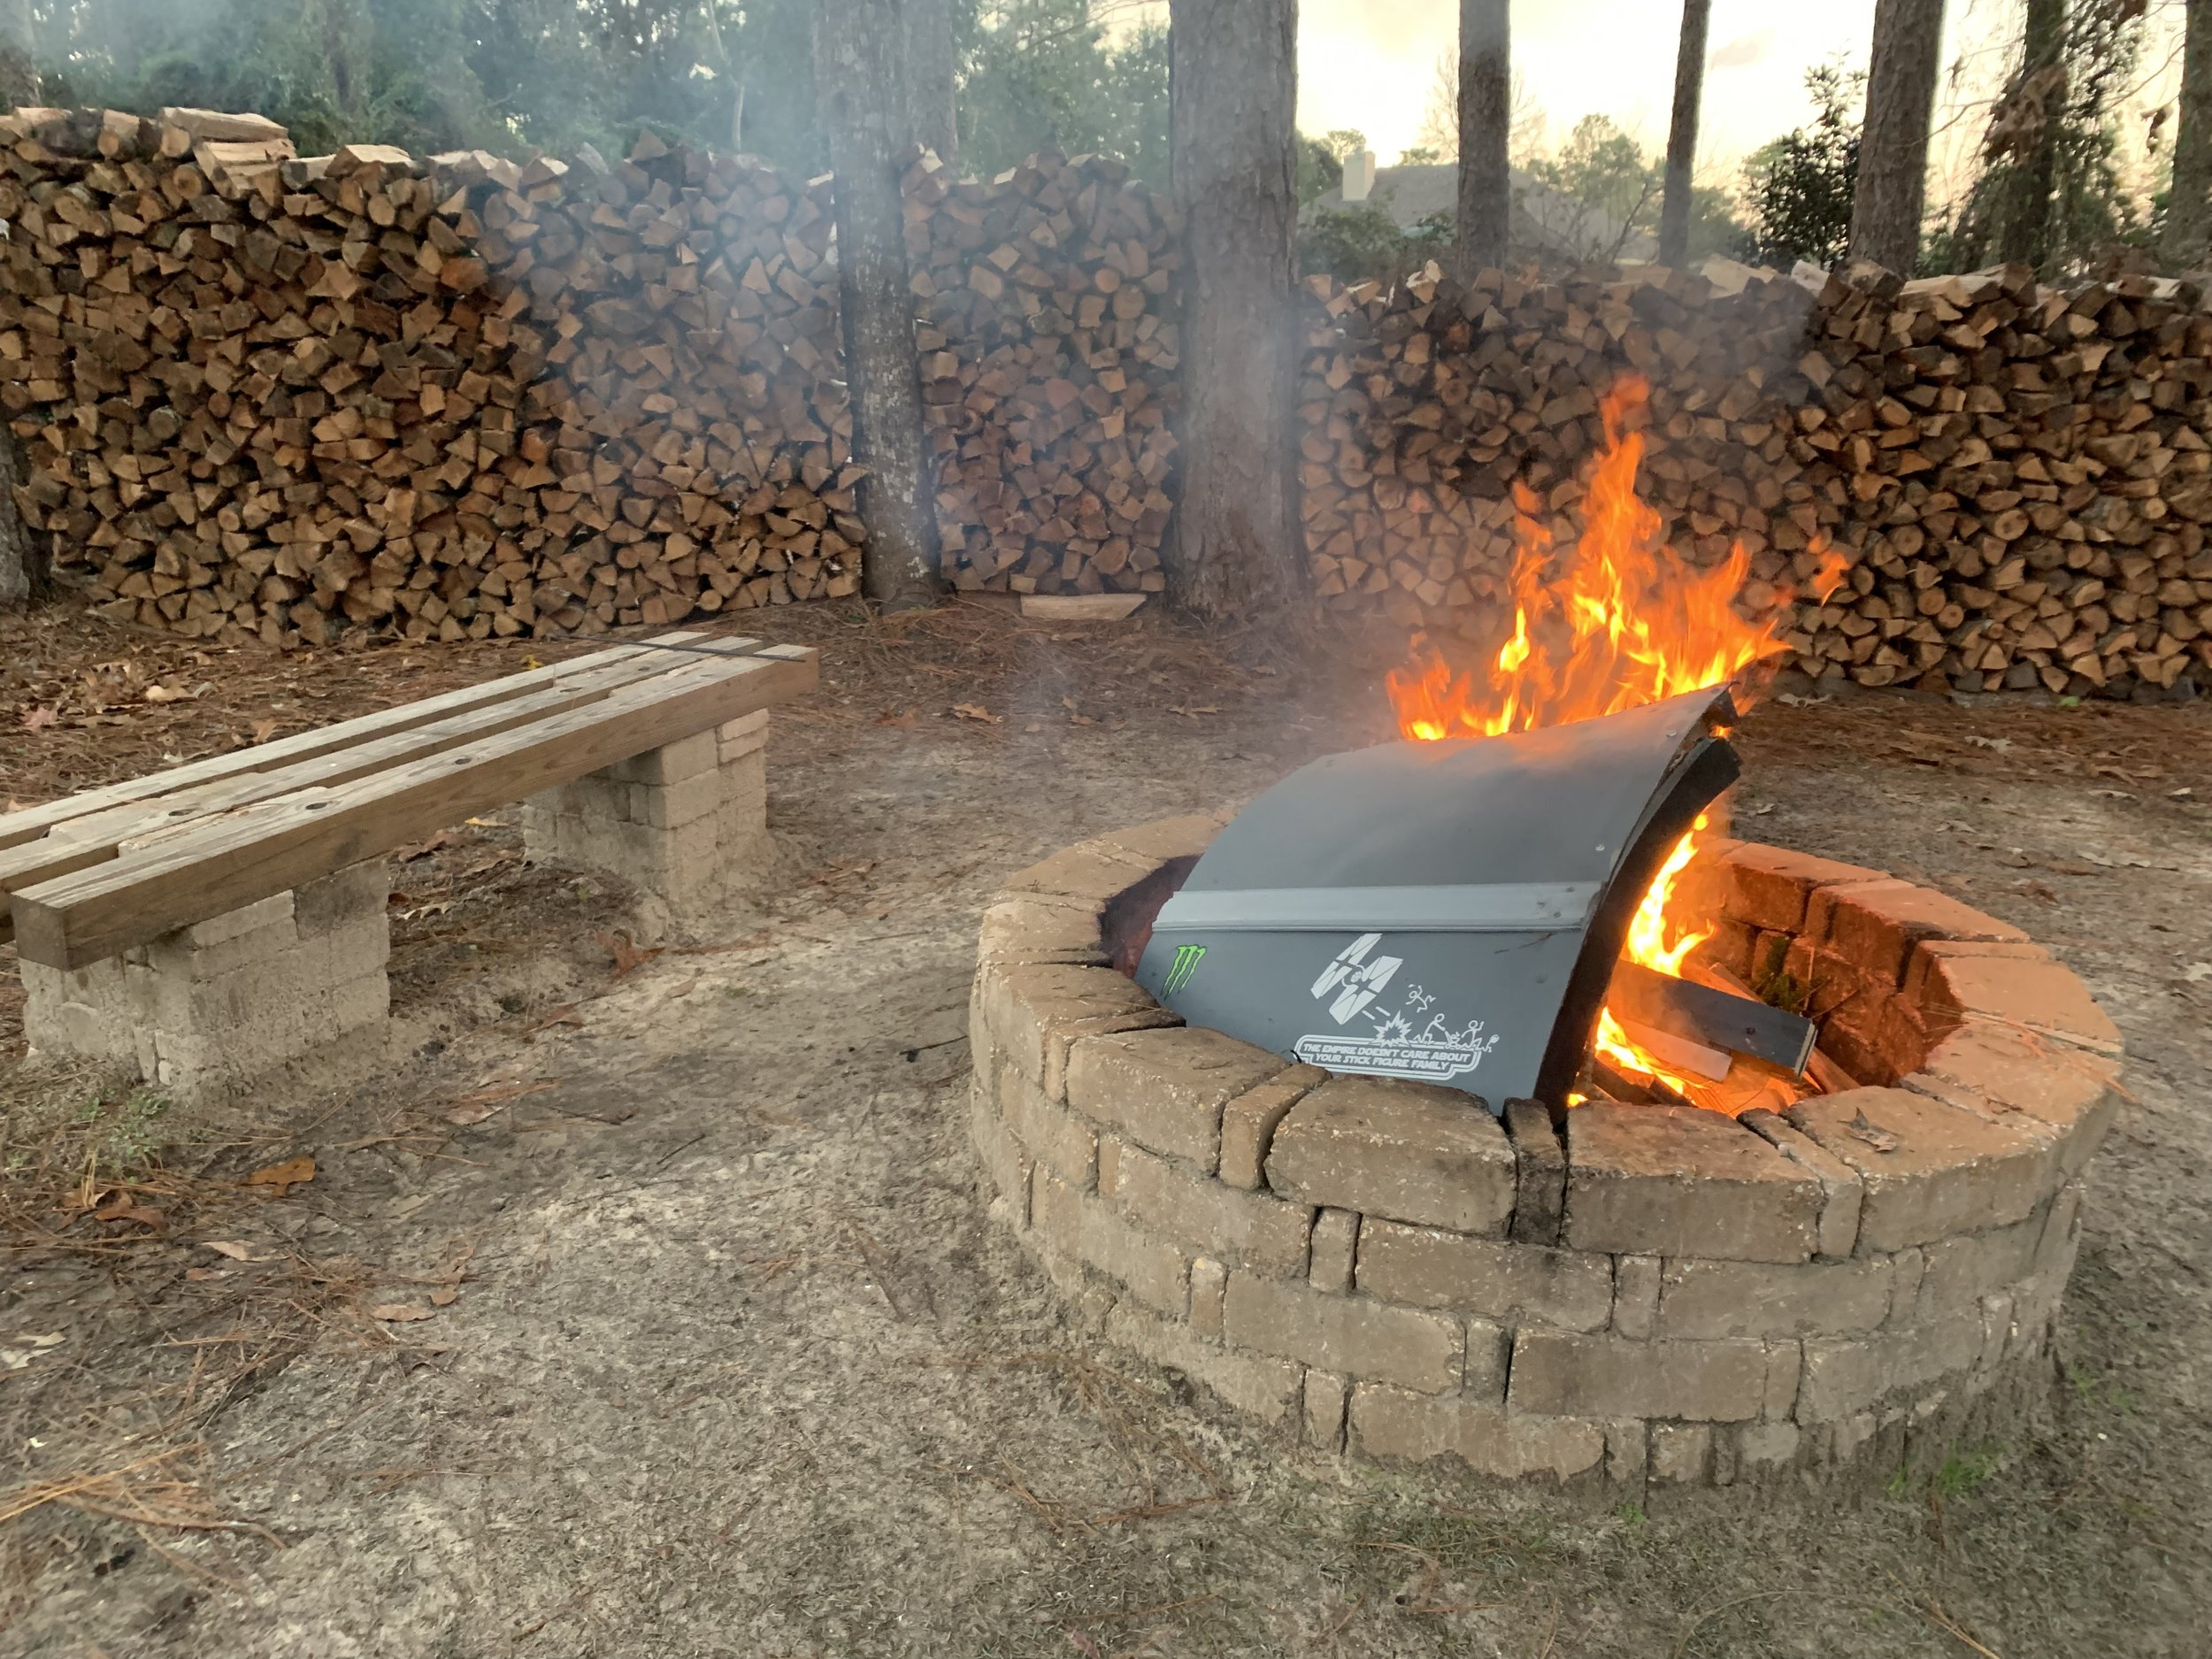 The home-made cabinet enclosure (that I was never fully satisfied with) cut into pieces and committed to fire..